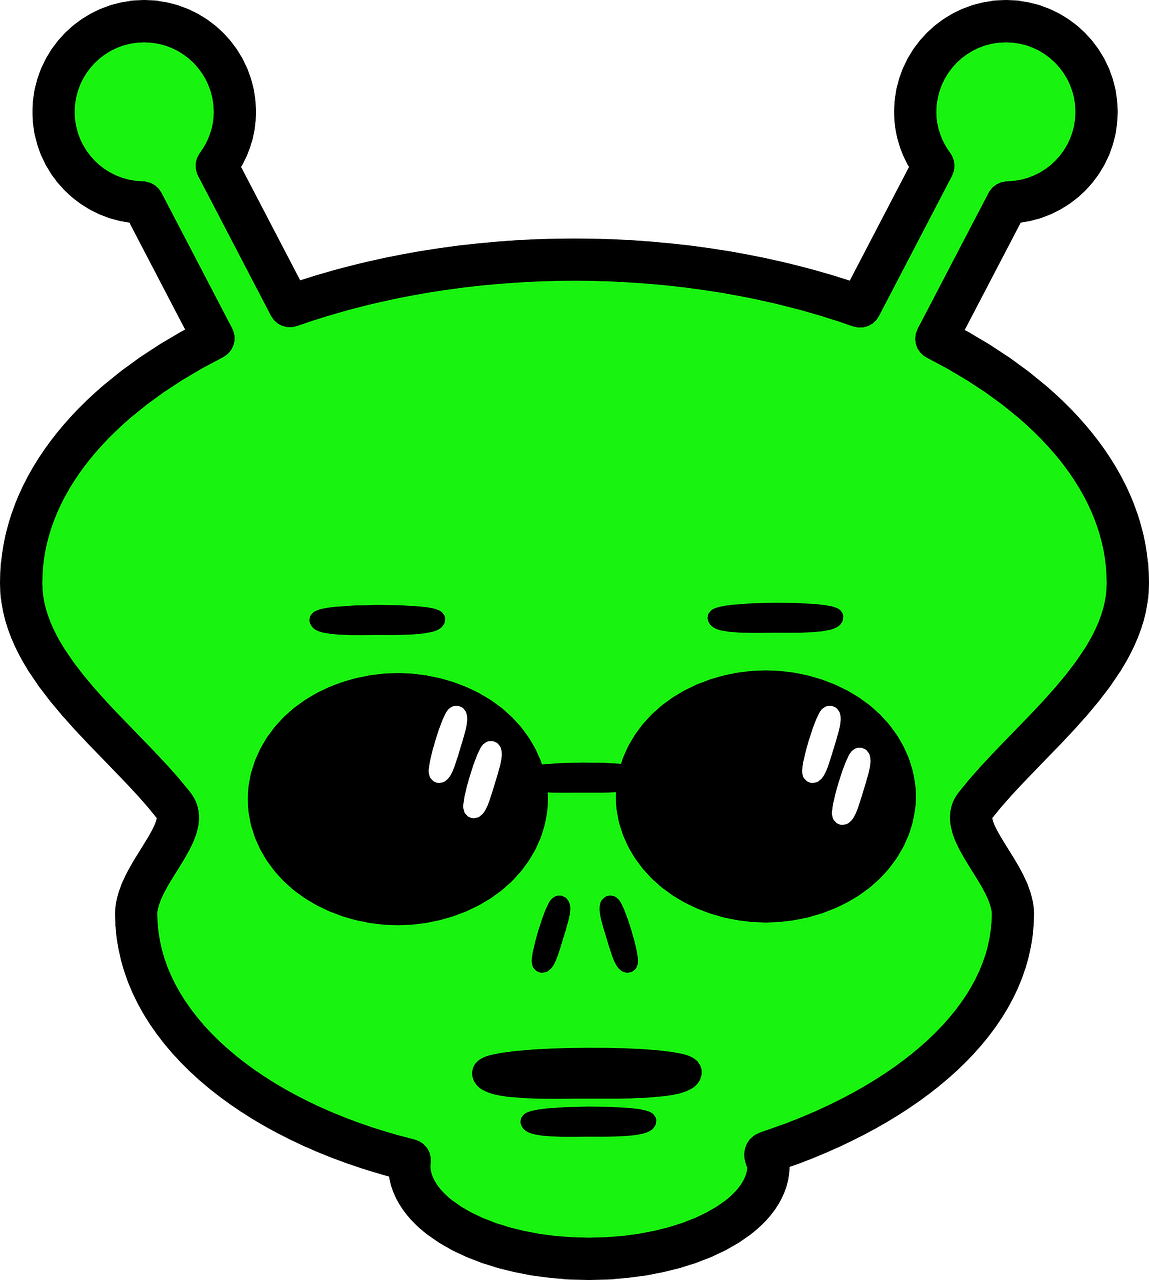 Alien face horns space. Ufo clipart comic